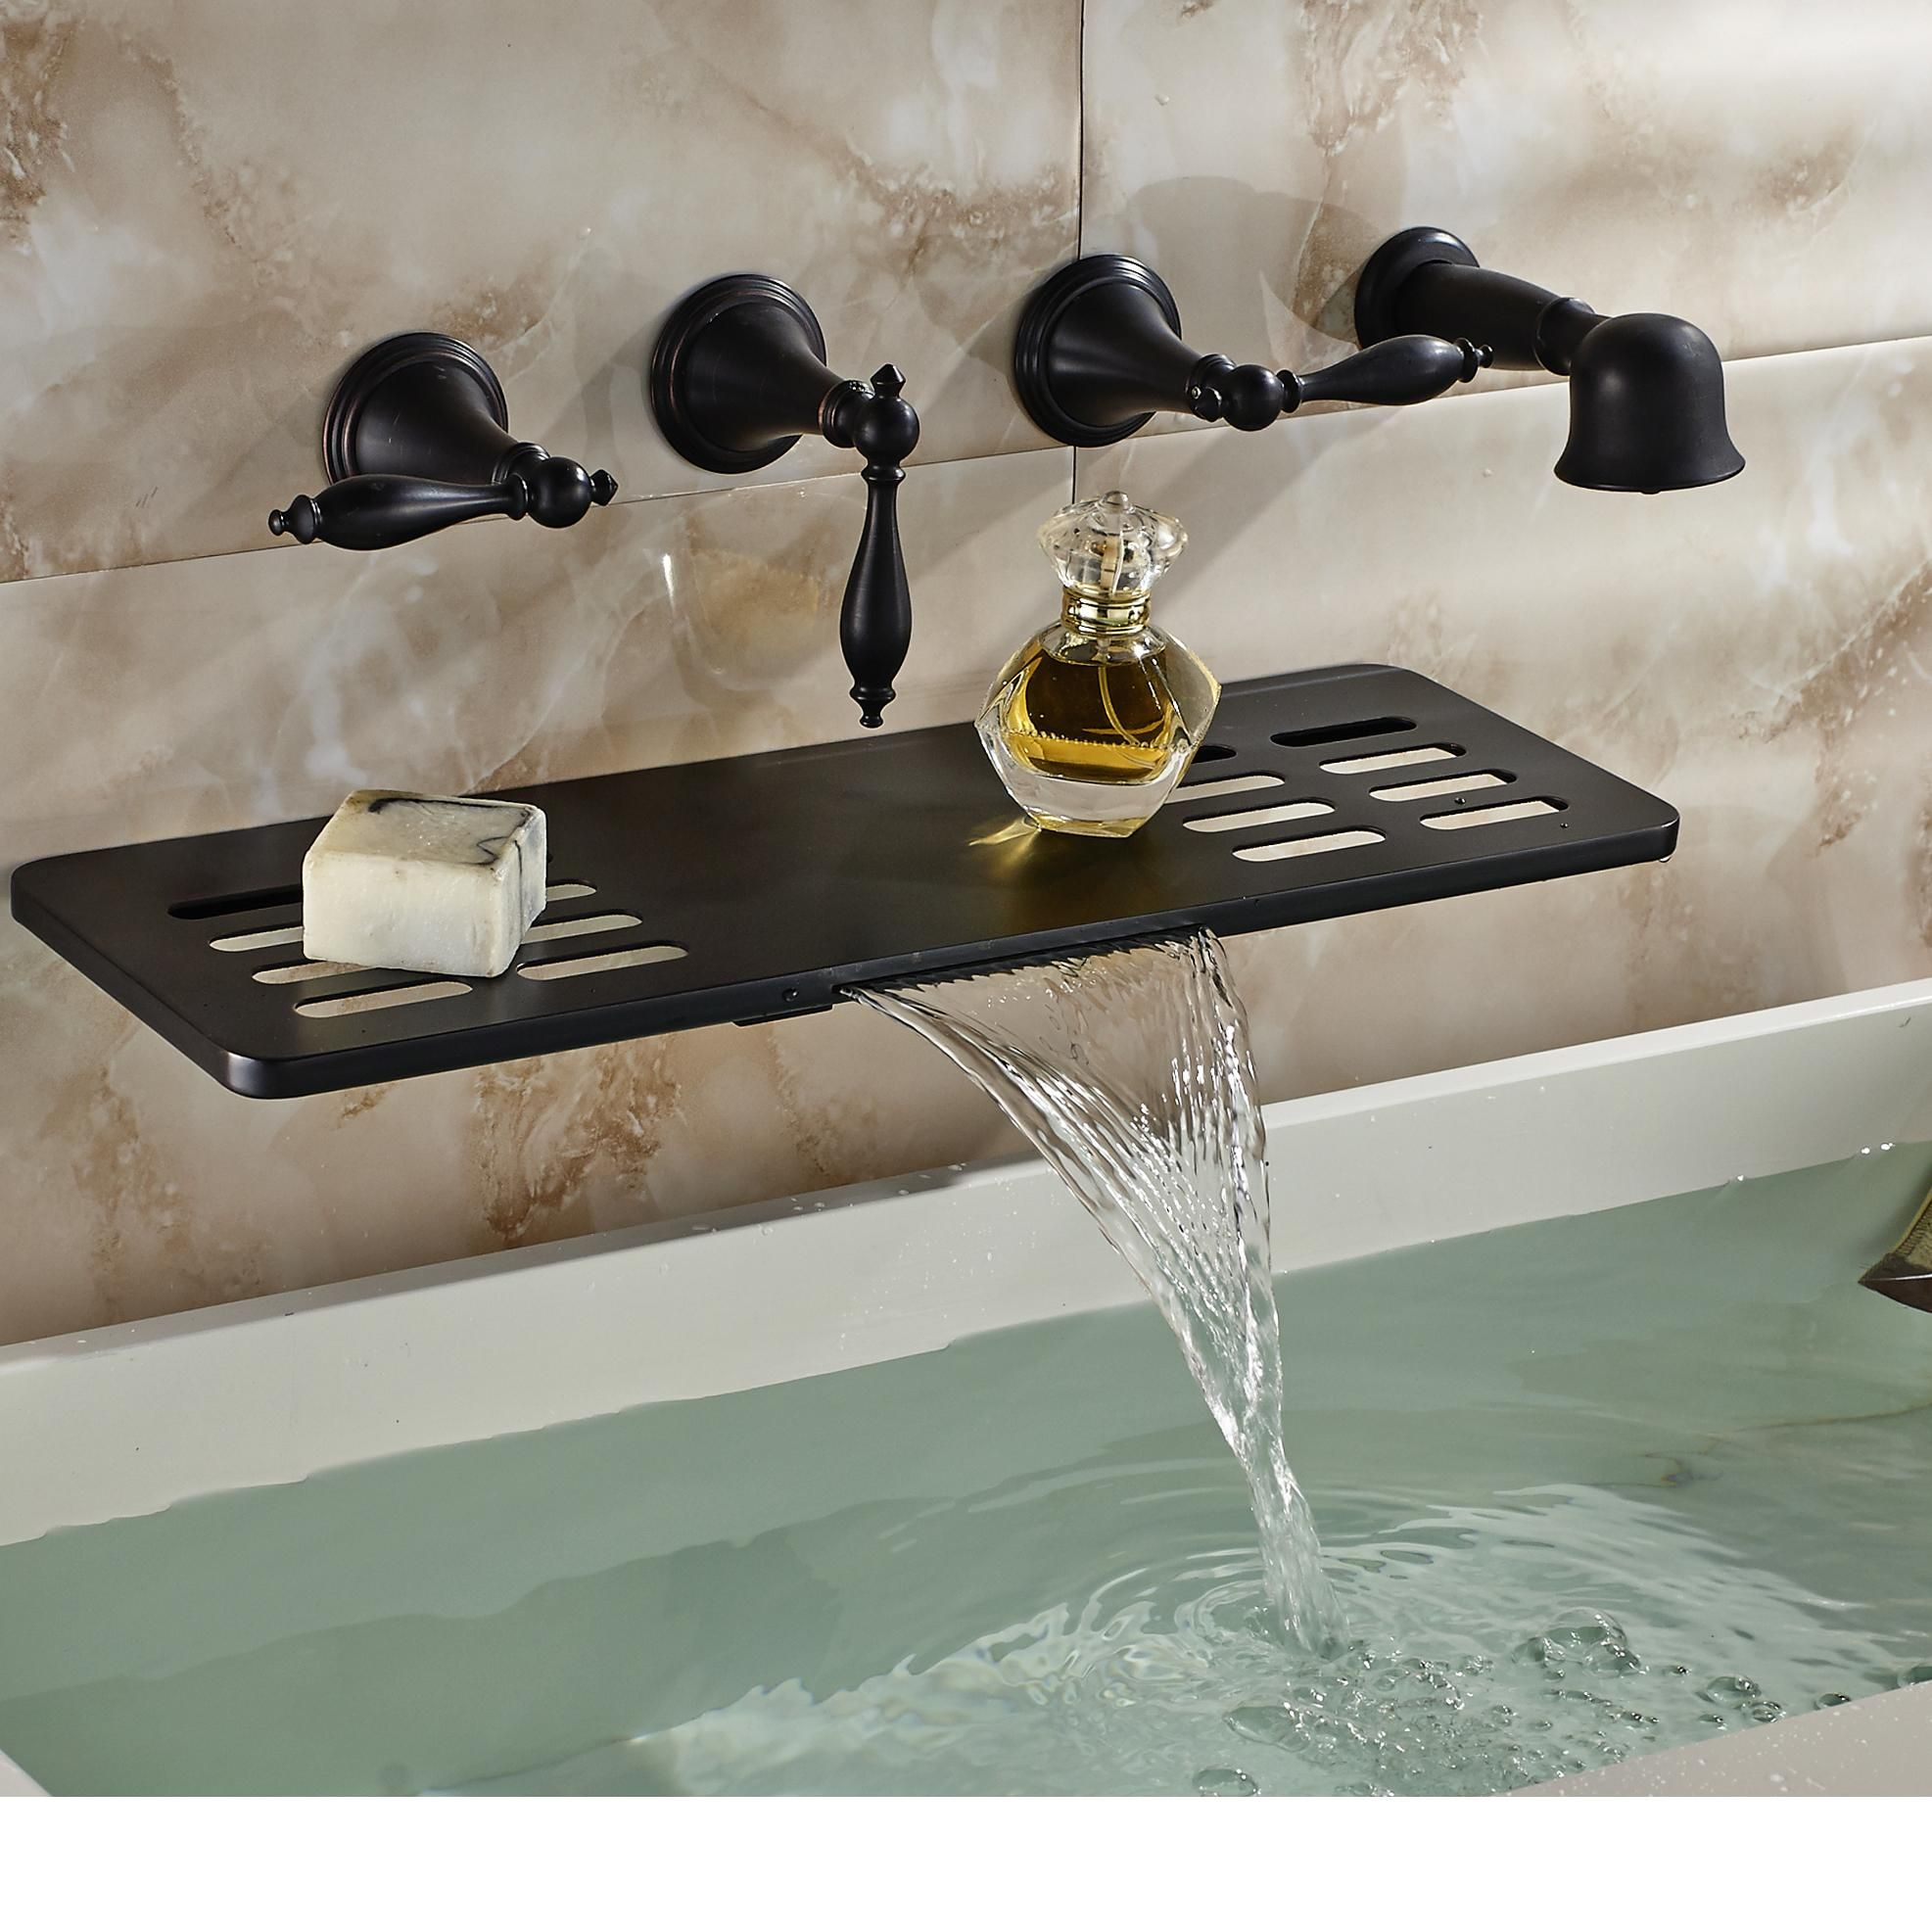 for sink tub fabulous kohler rubbed lowes bathroom ideas faucet waterfall modern bronze home depot bath handle porcelain shower faucets